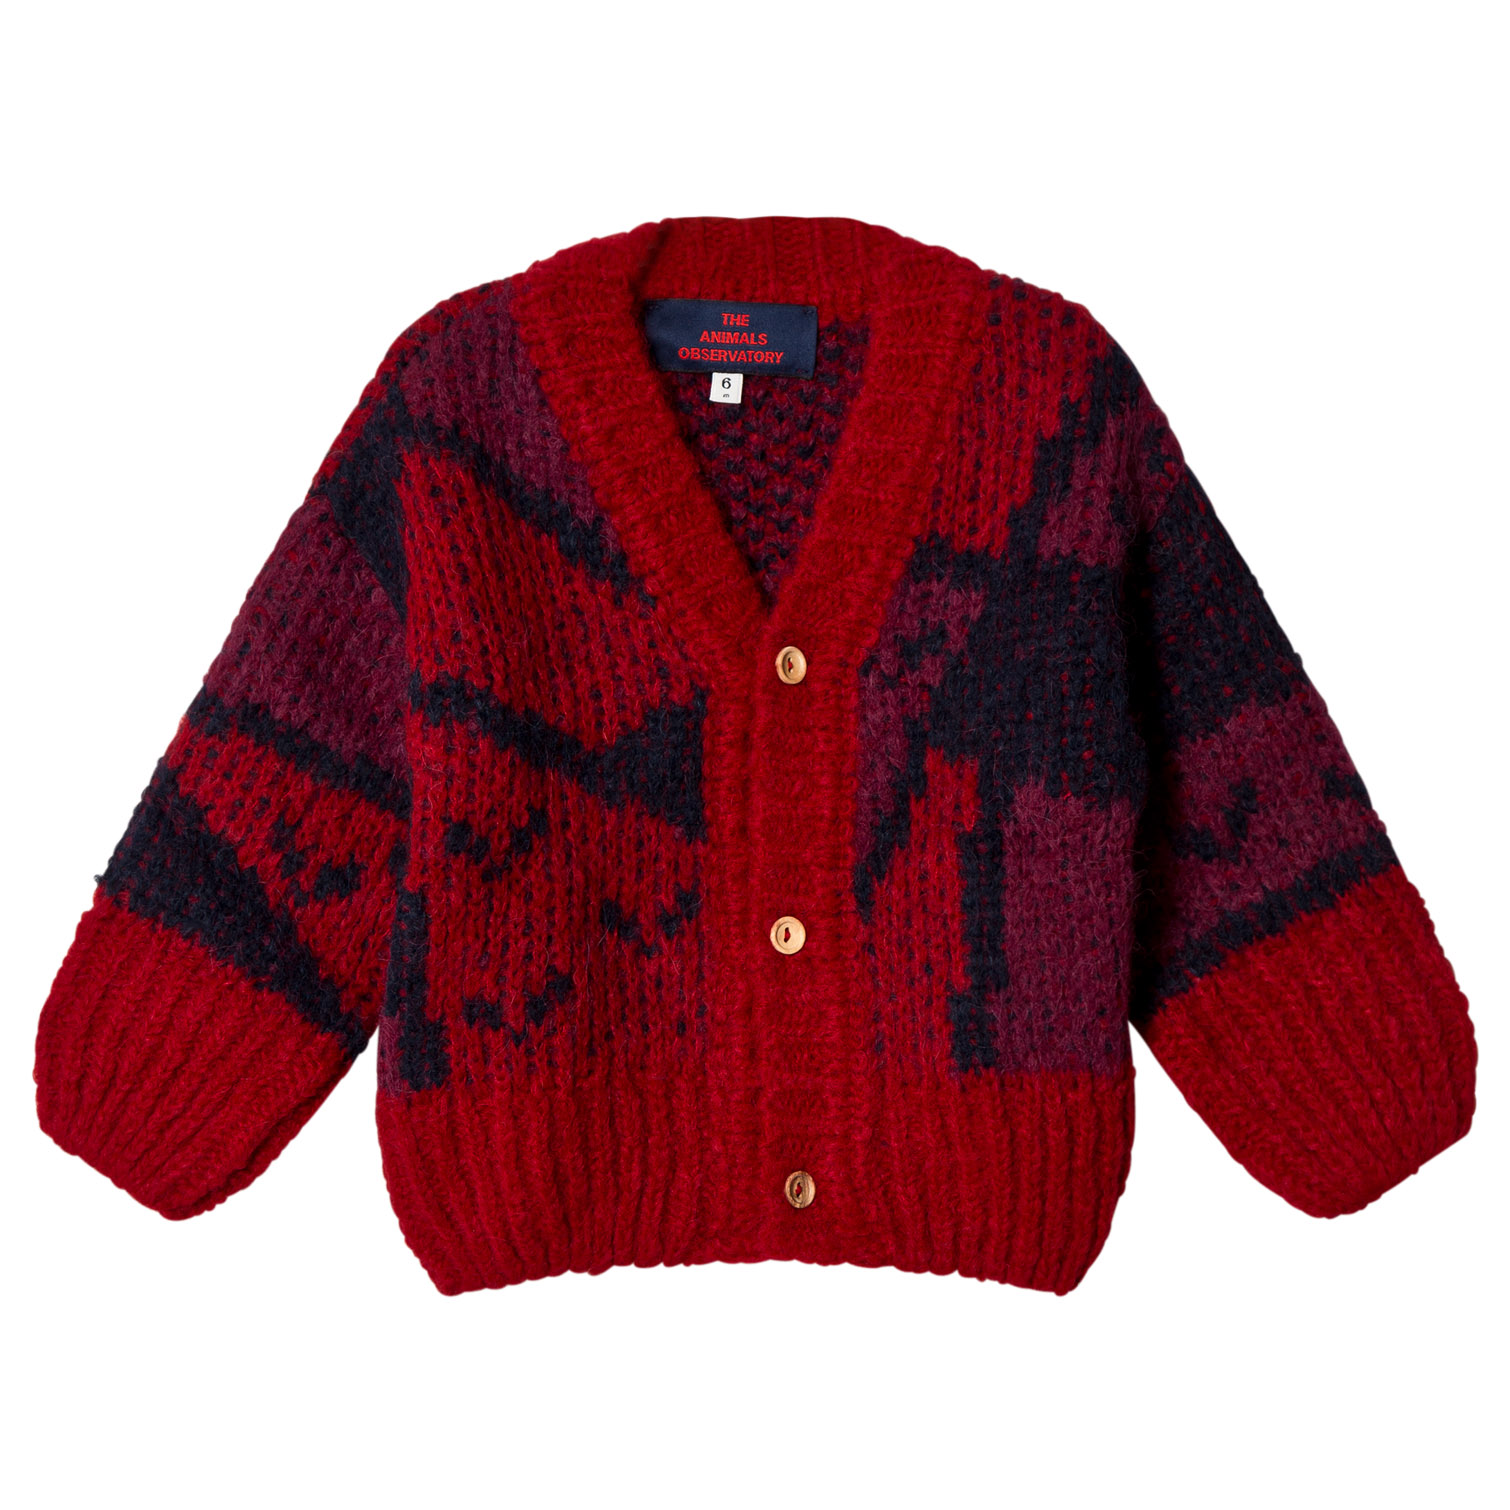 ad5a7ea7c16f The Animals Observatory Red Apple Arty Peasant Babies Cardigan ...